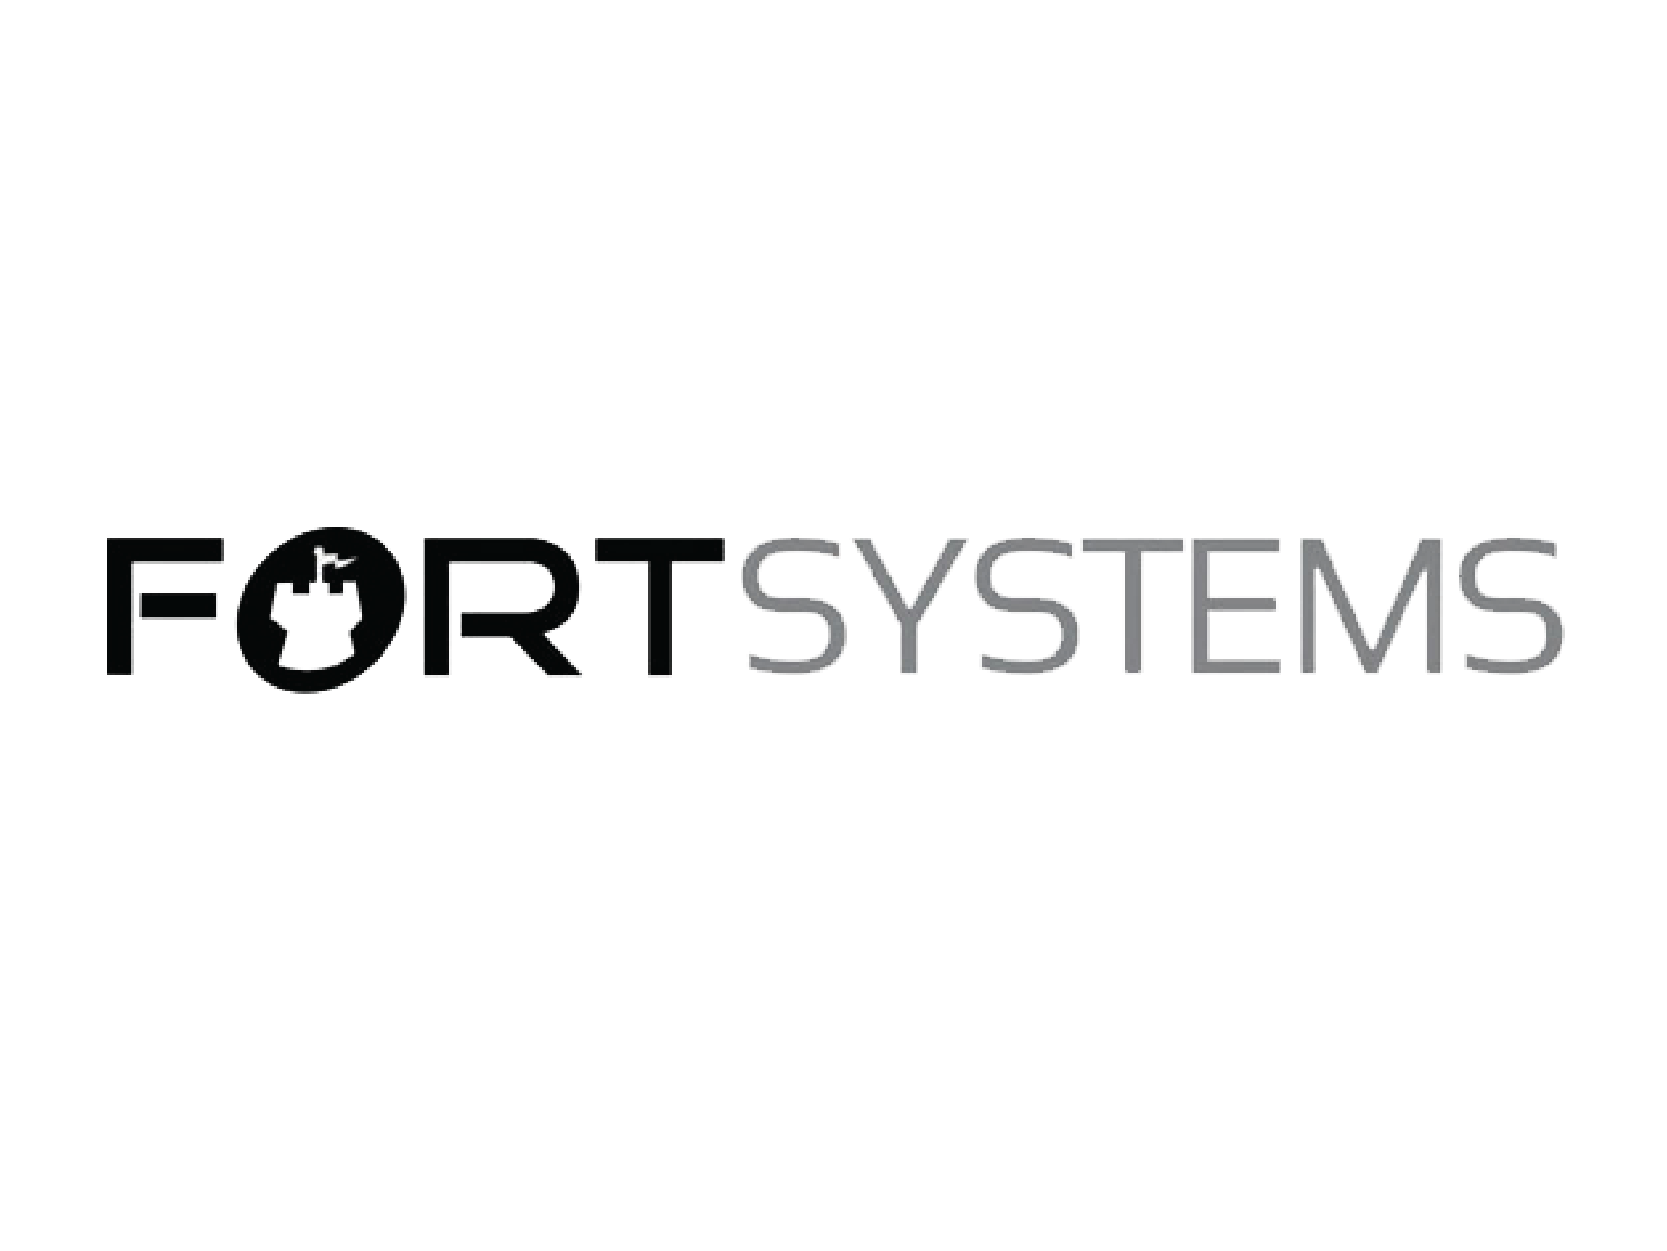 FORTSYSTEMS